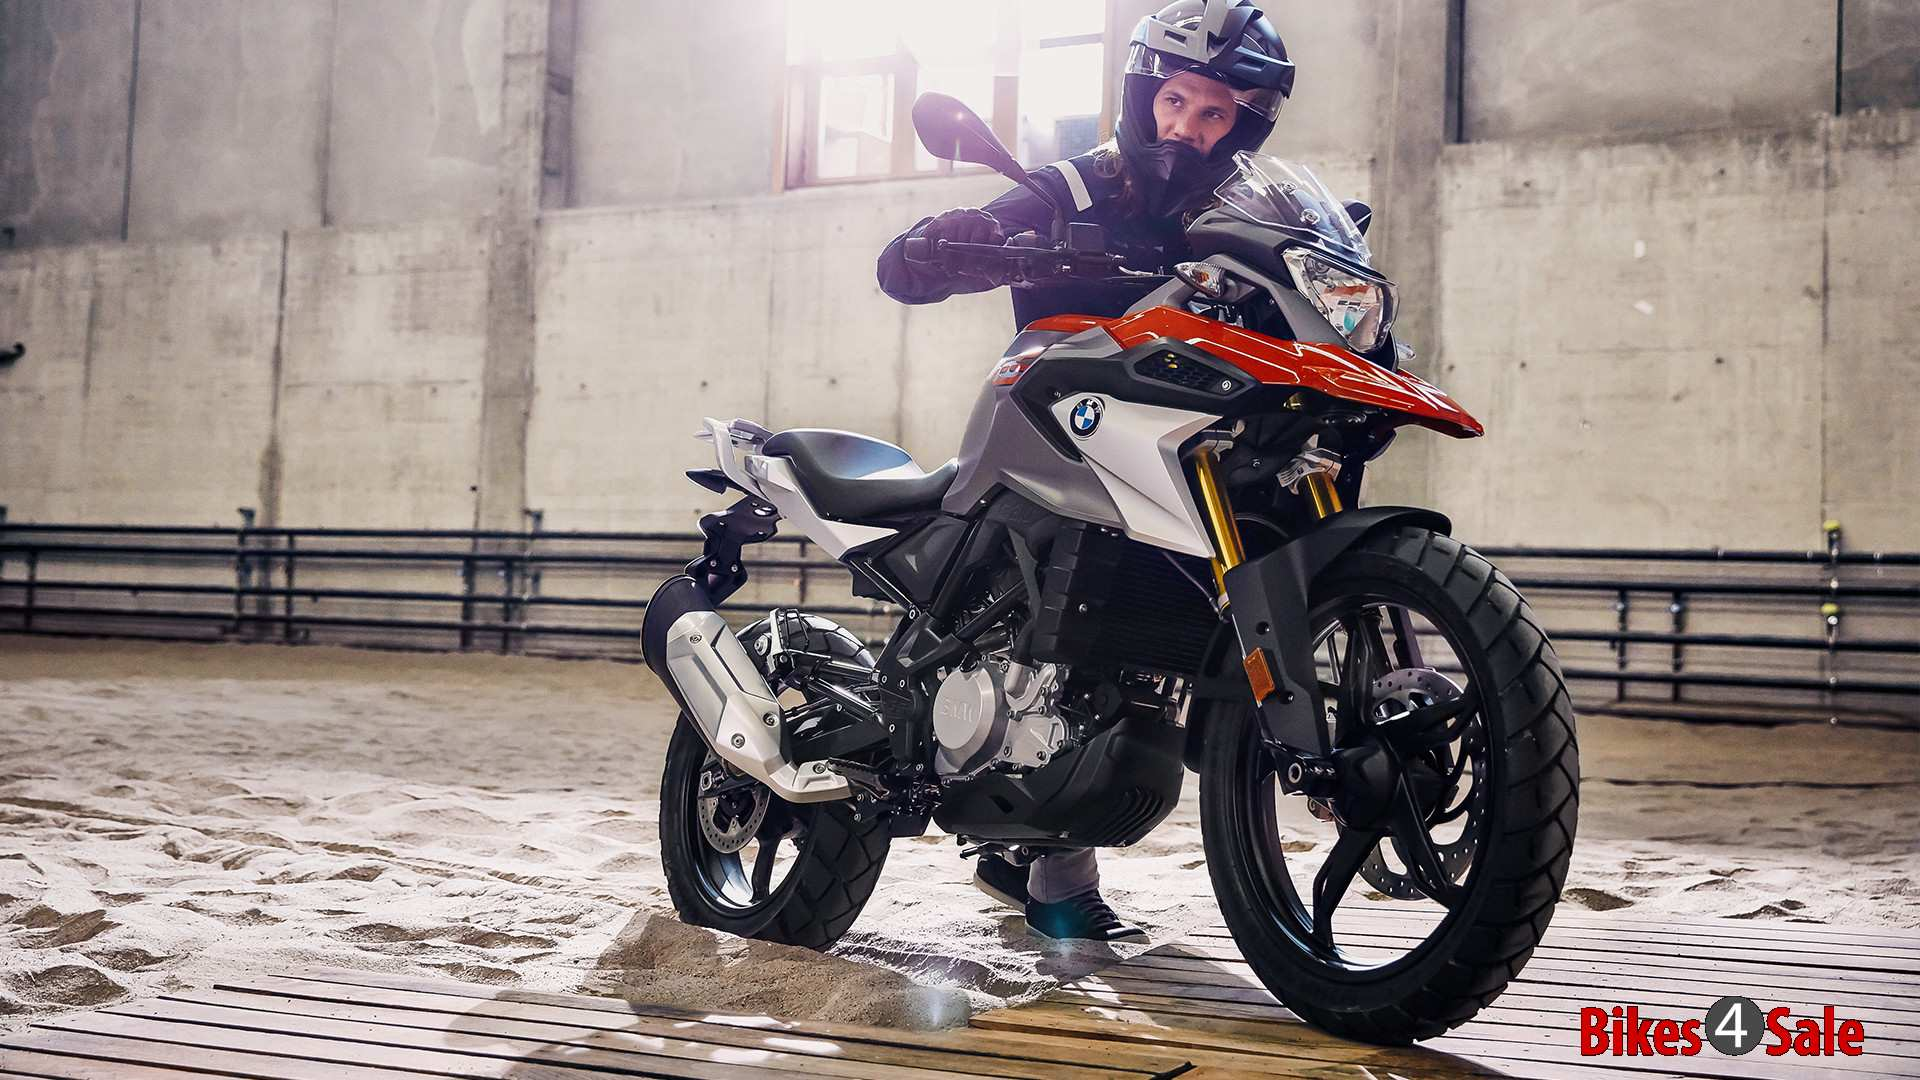 Bmw G 310 Gs Motorcycle Picture Gallery Adventure Bike Based On The